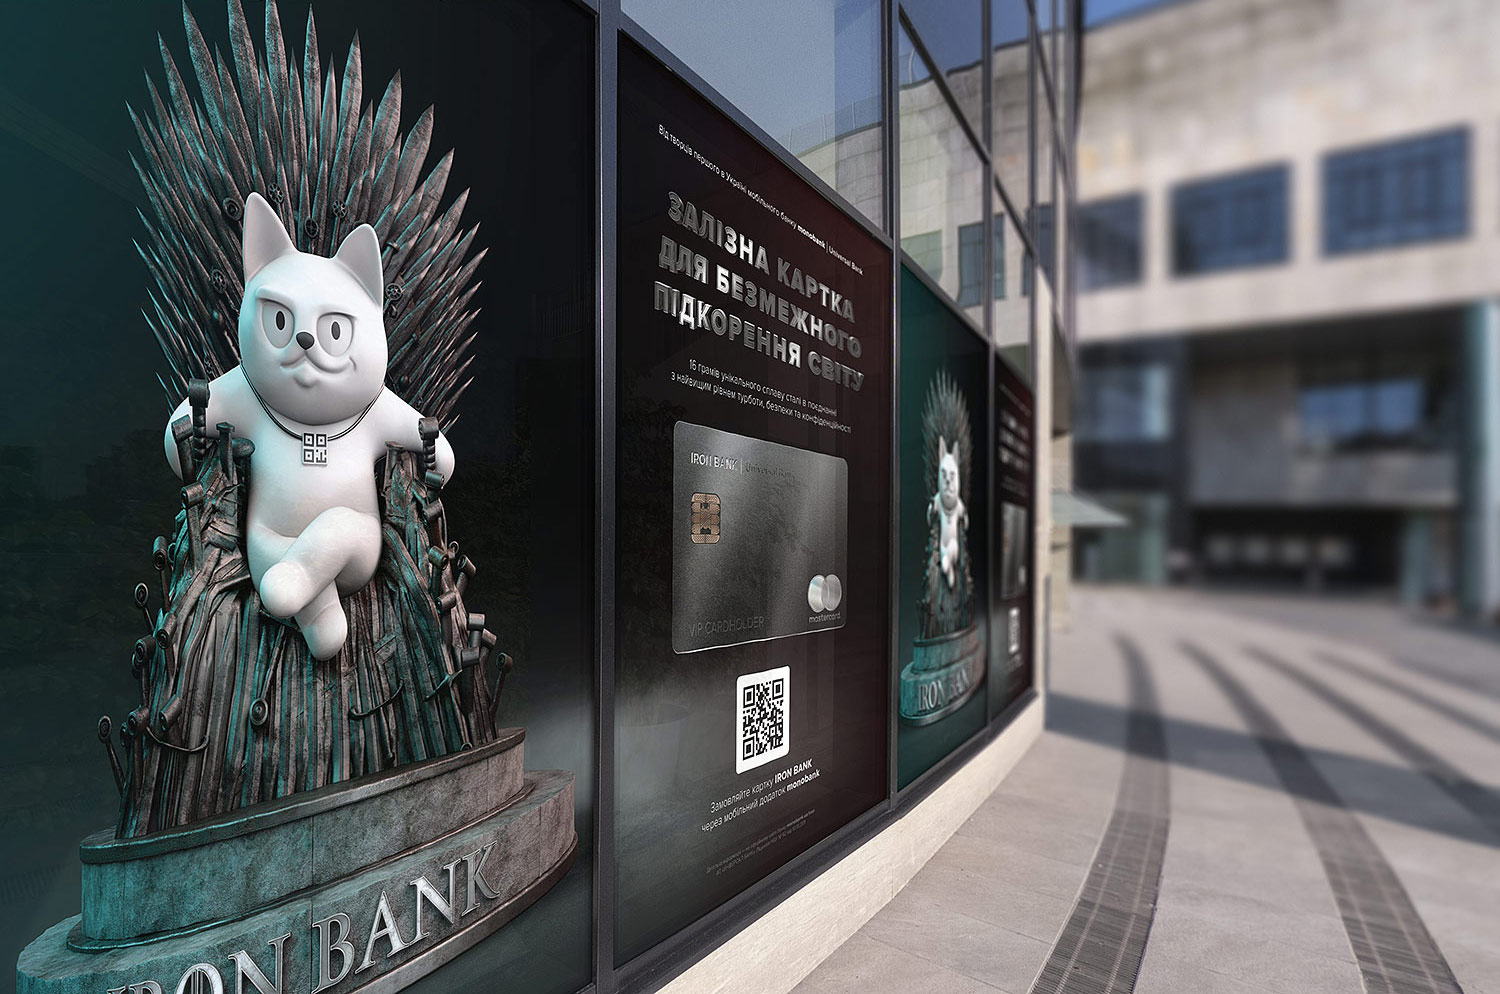 QR cat on the iron throne. Metal card IRON BANK (monobank). Advertising on the windows in the bank branch.